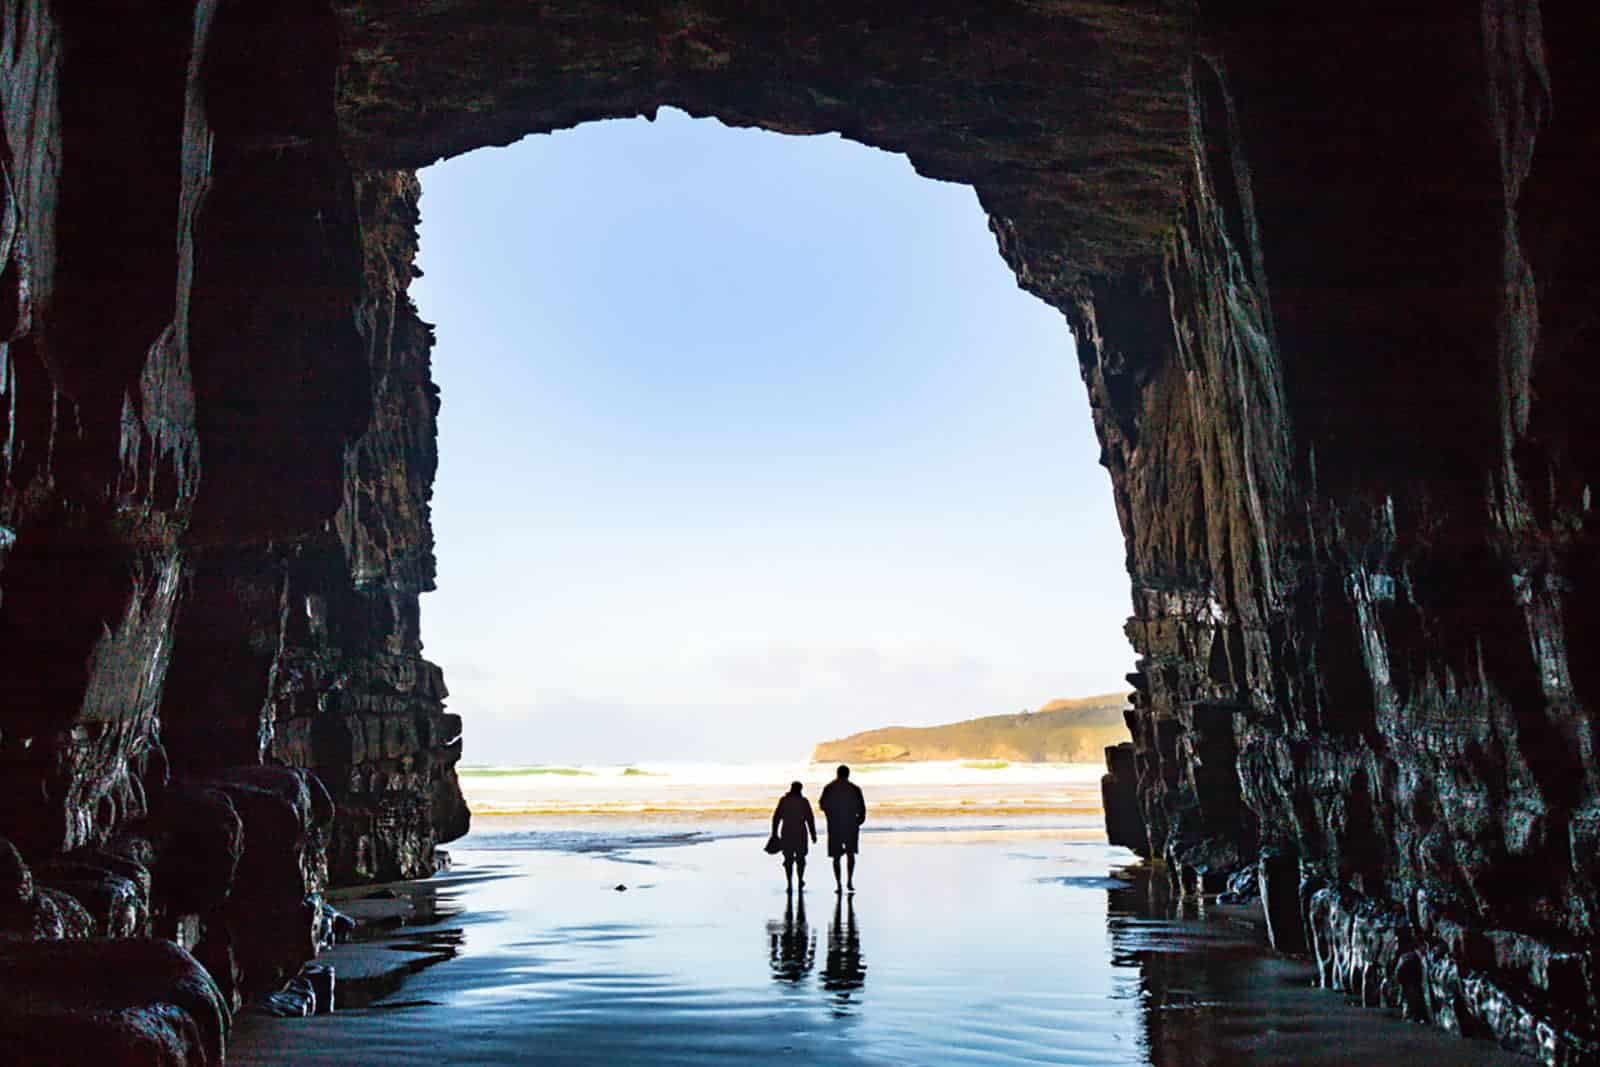 Cathedral Cave is another stunning place to visit in South Island.